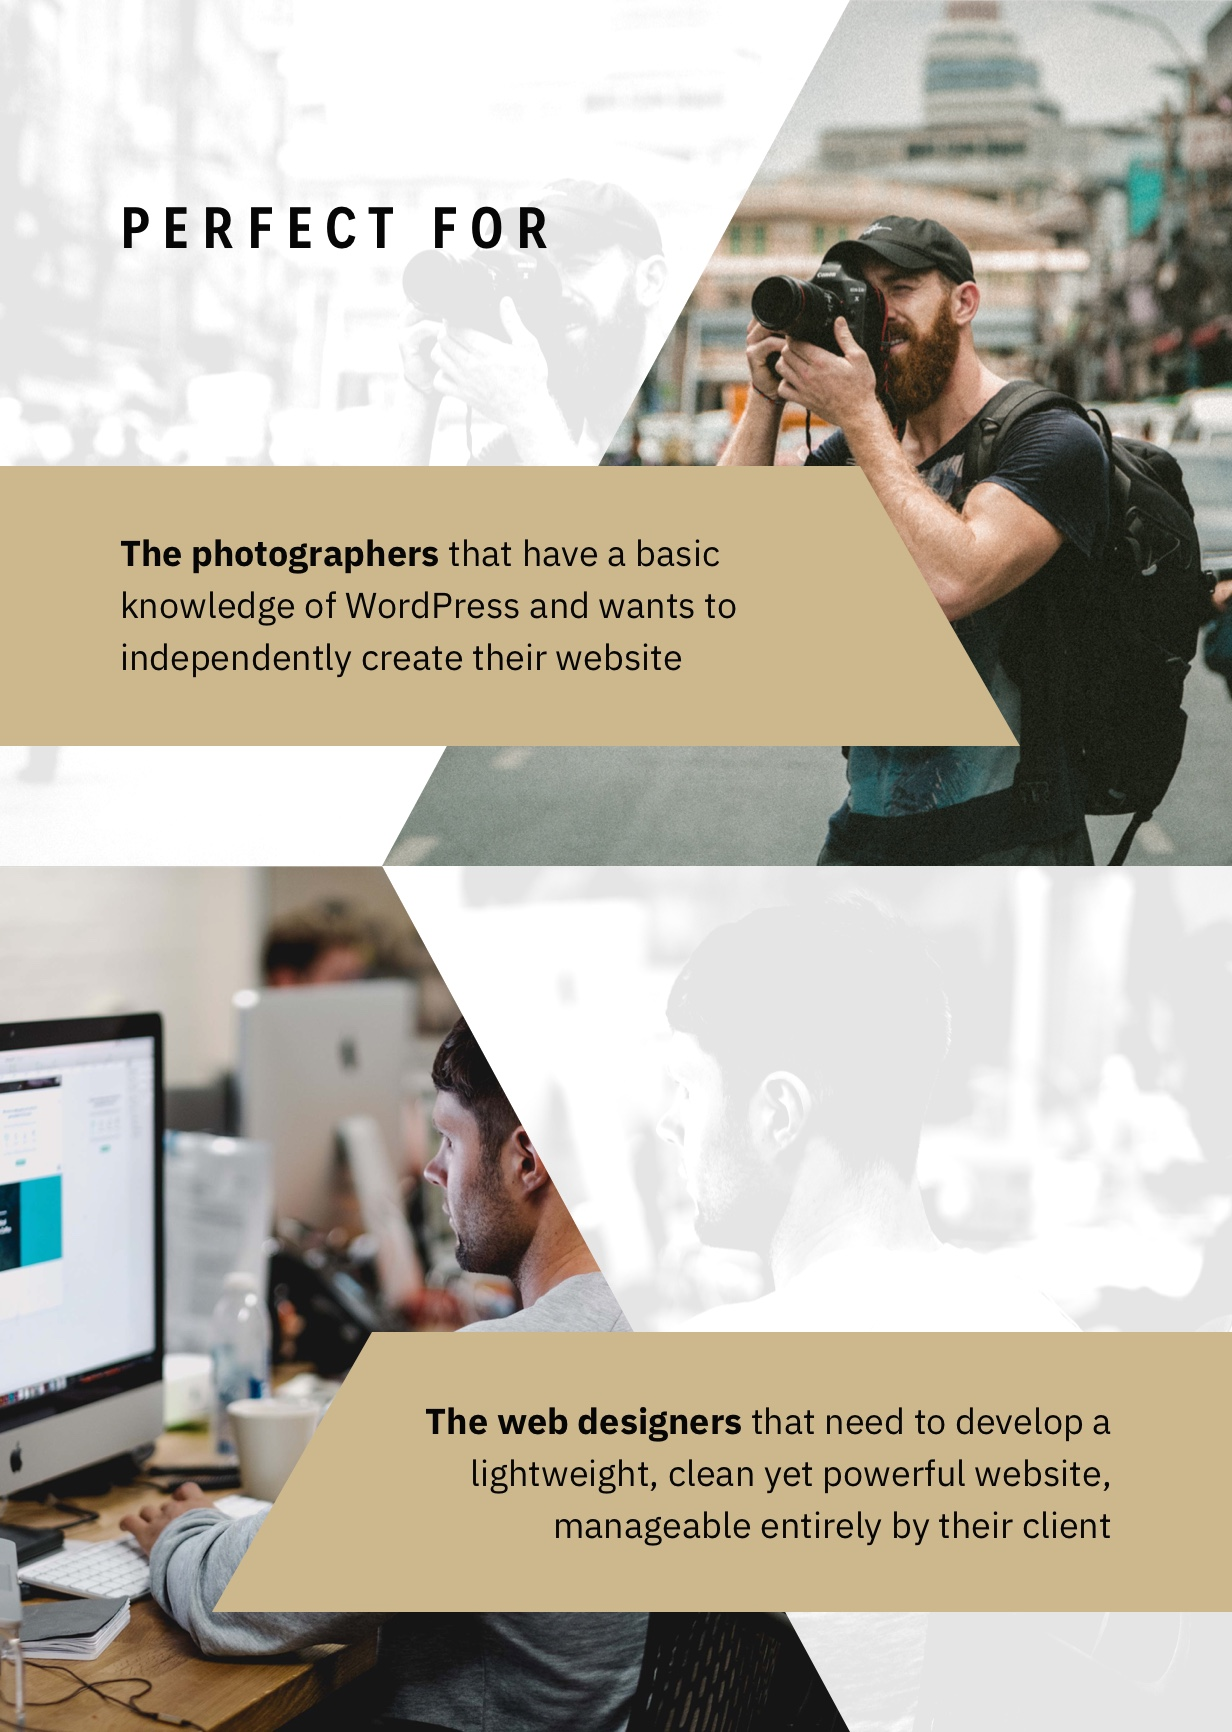 Clayton, an Elegant Theme for Photographers - 15